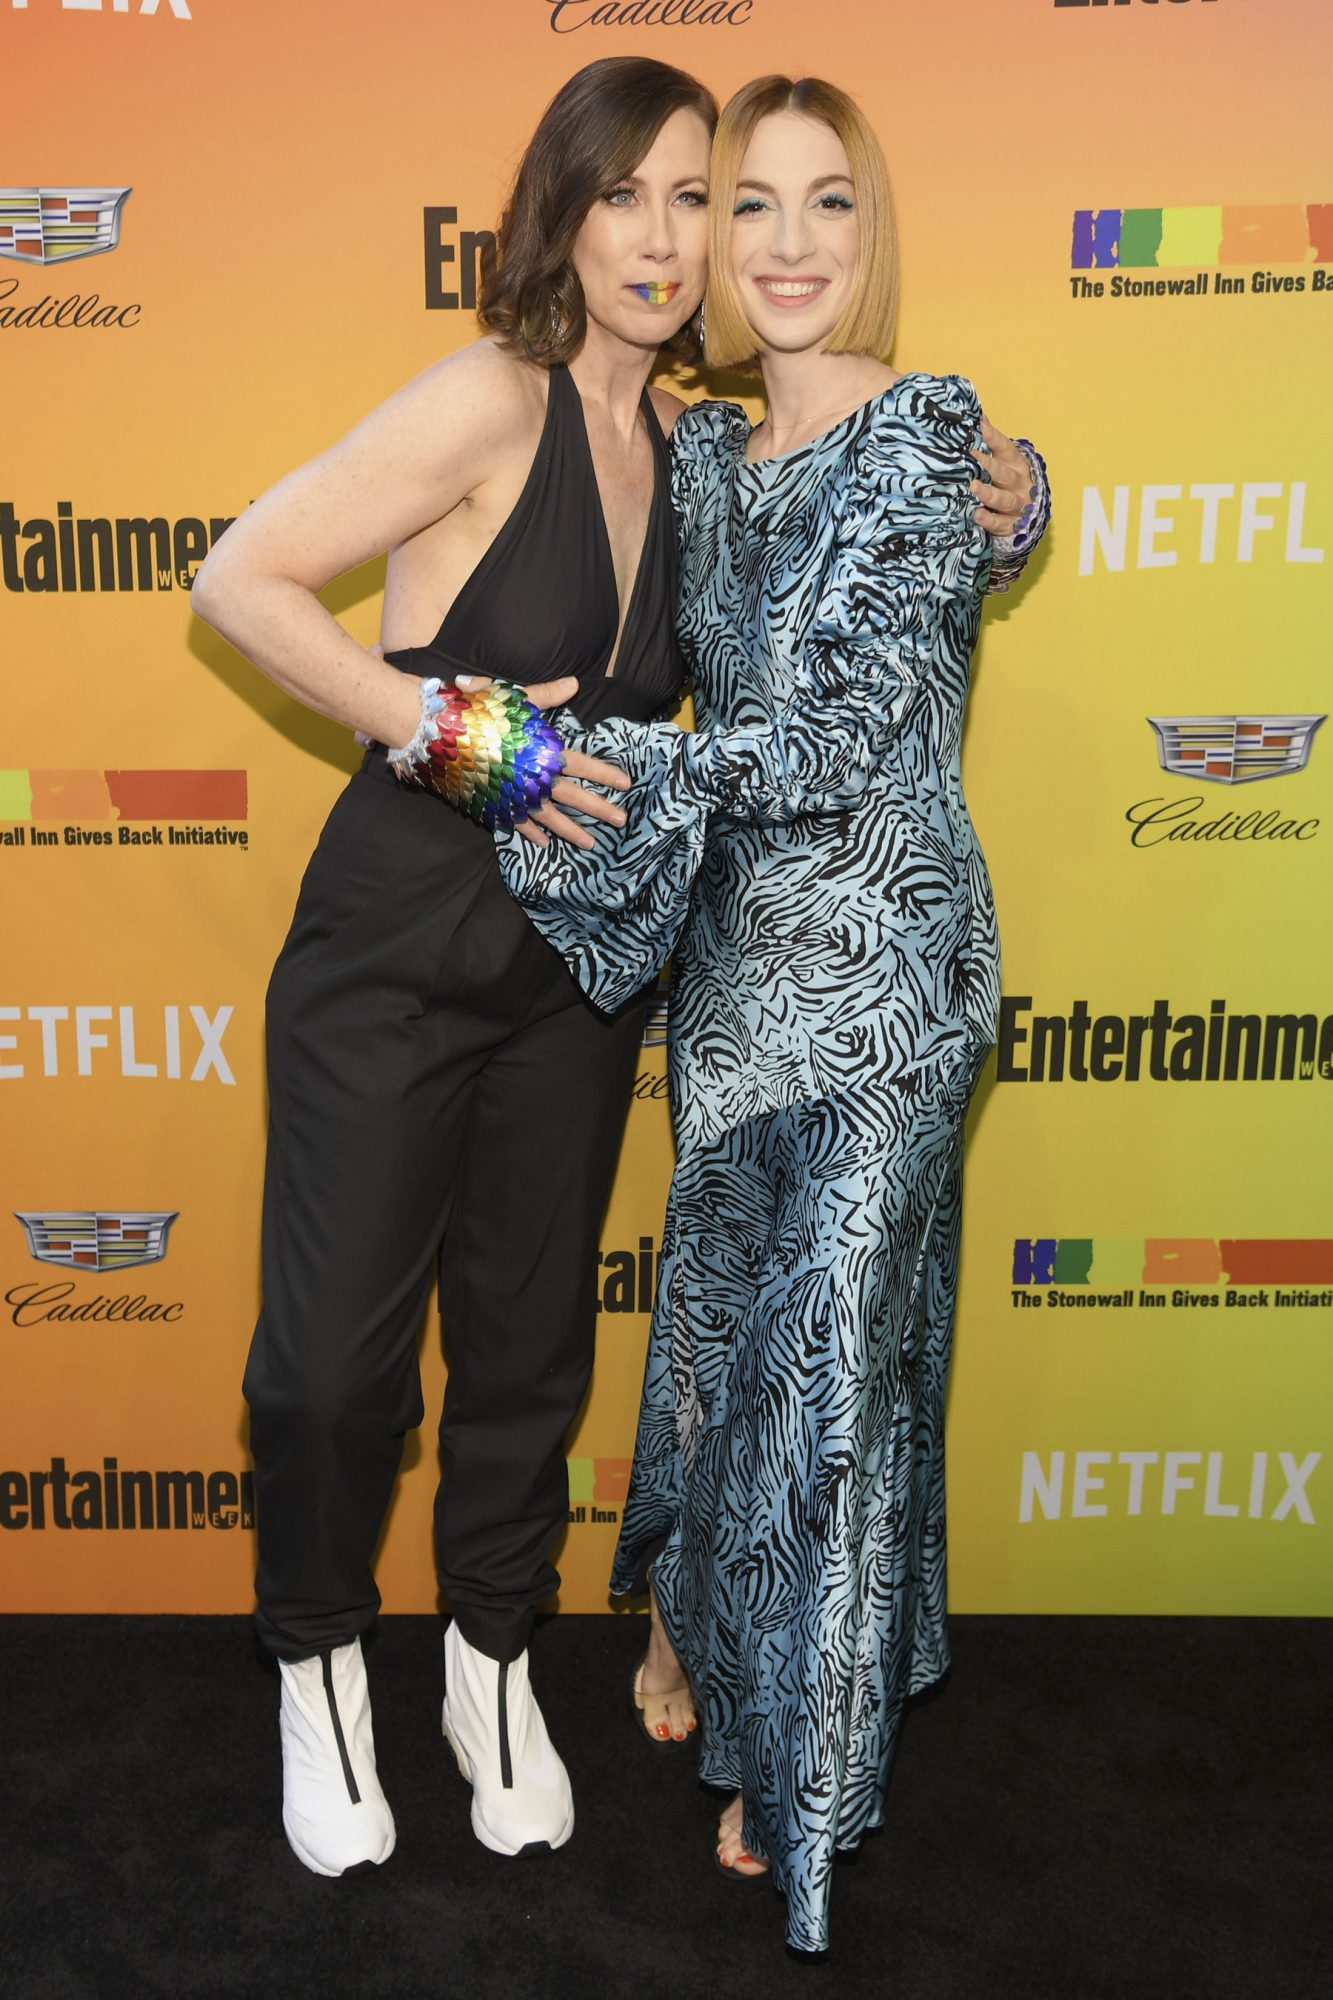 NEW YORK, NEW YORK - JUNE 05: Miriam Shor and Molly Bernard attend as Entertainment Weekly Celebrates Its Annual LGBTQ Issue at the Stonewall Inn on June 05, 2019 in New York City. (Photo by Dimitrios Kambouris/Getty Images for Entertainment Weekly)